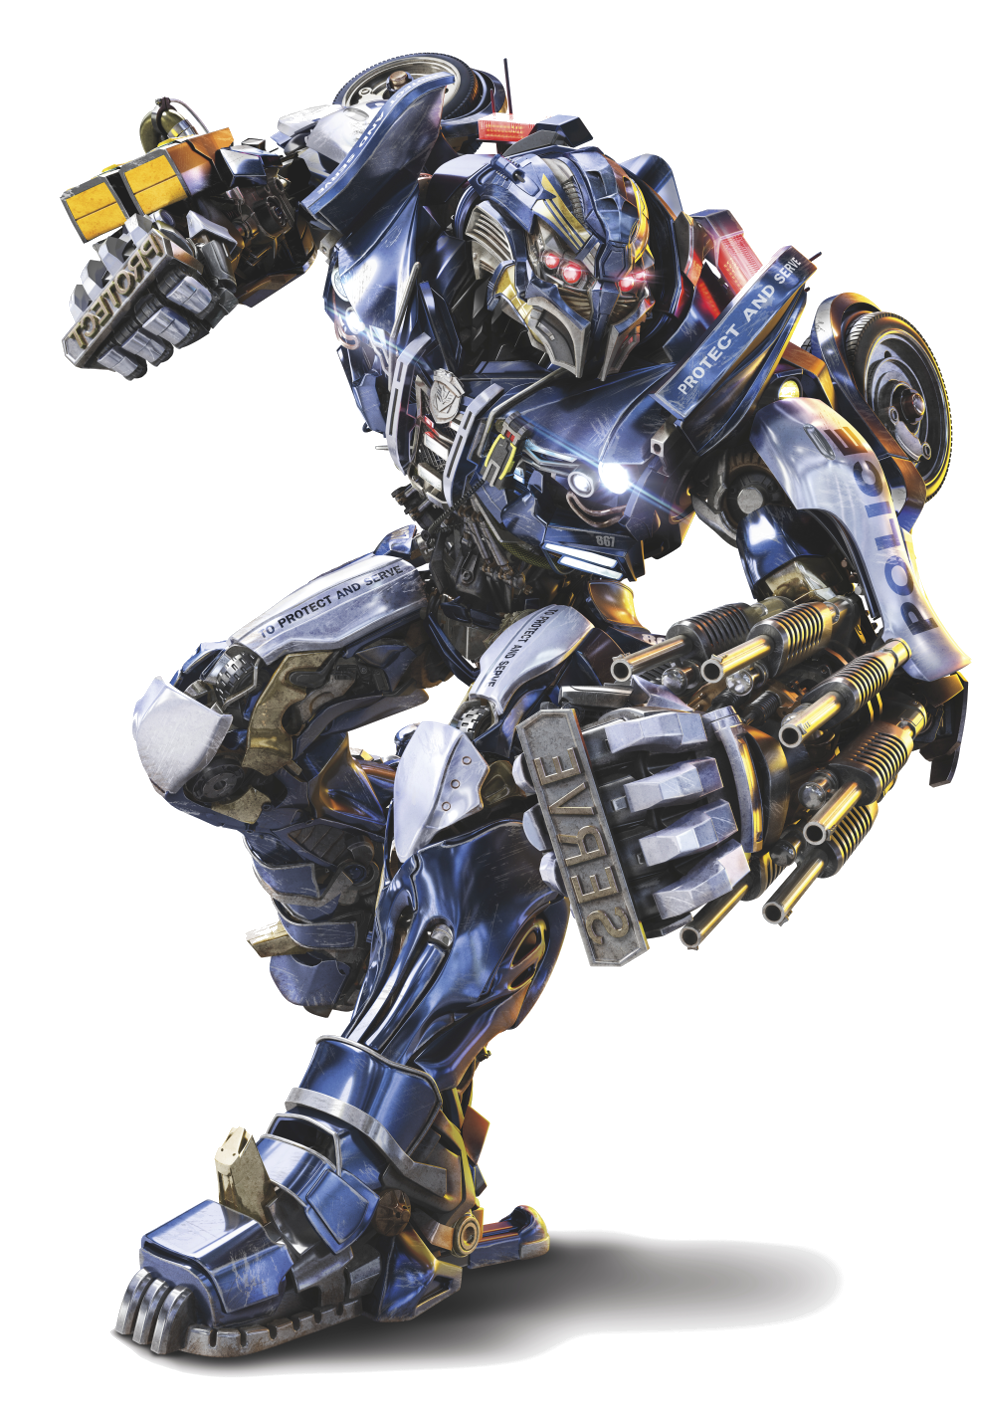 Crosshairs transformers png. Barricade cinematic universe wiki